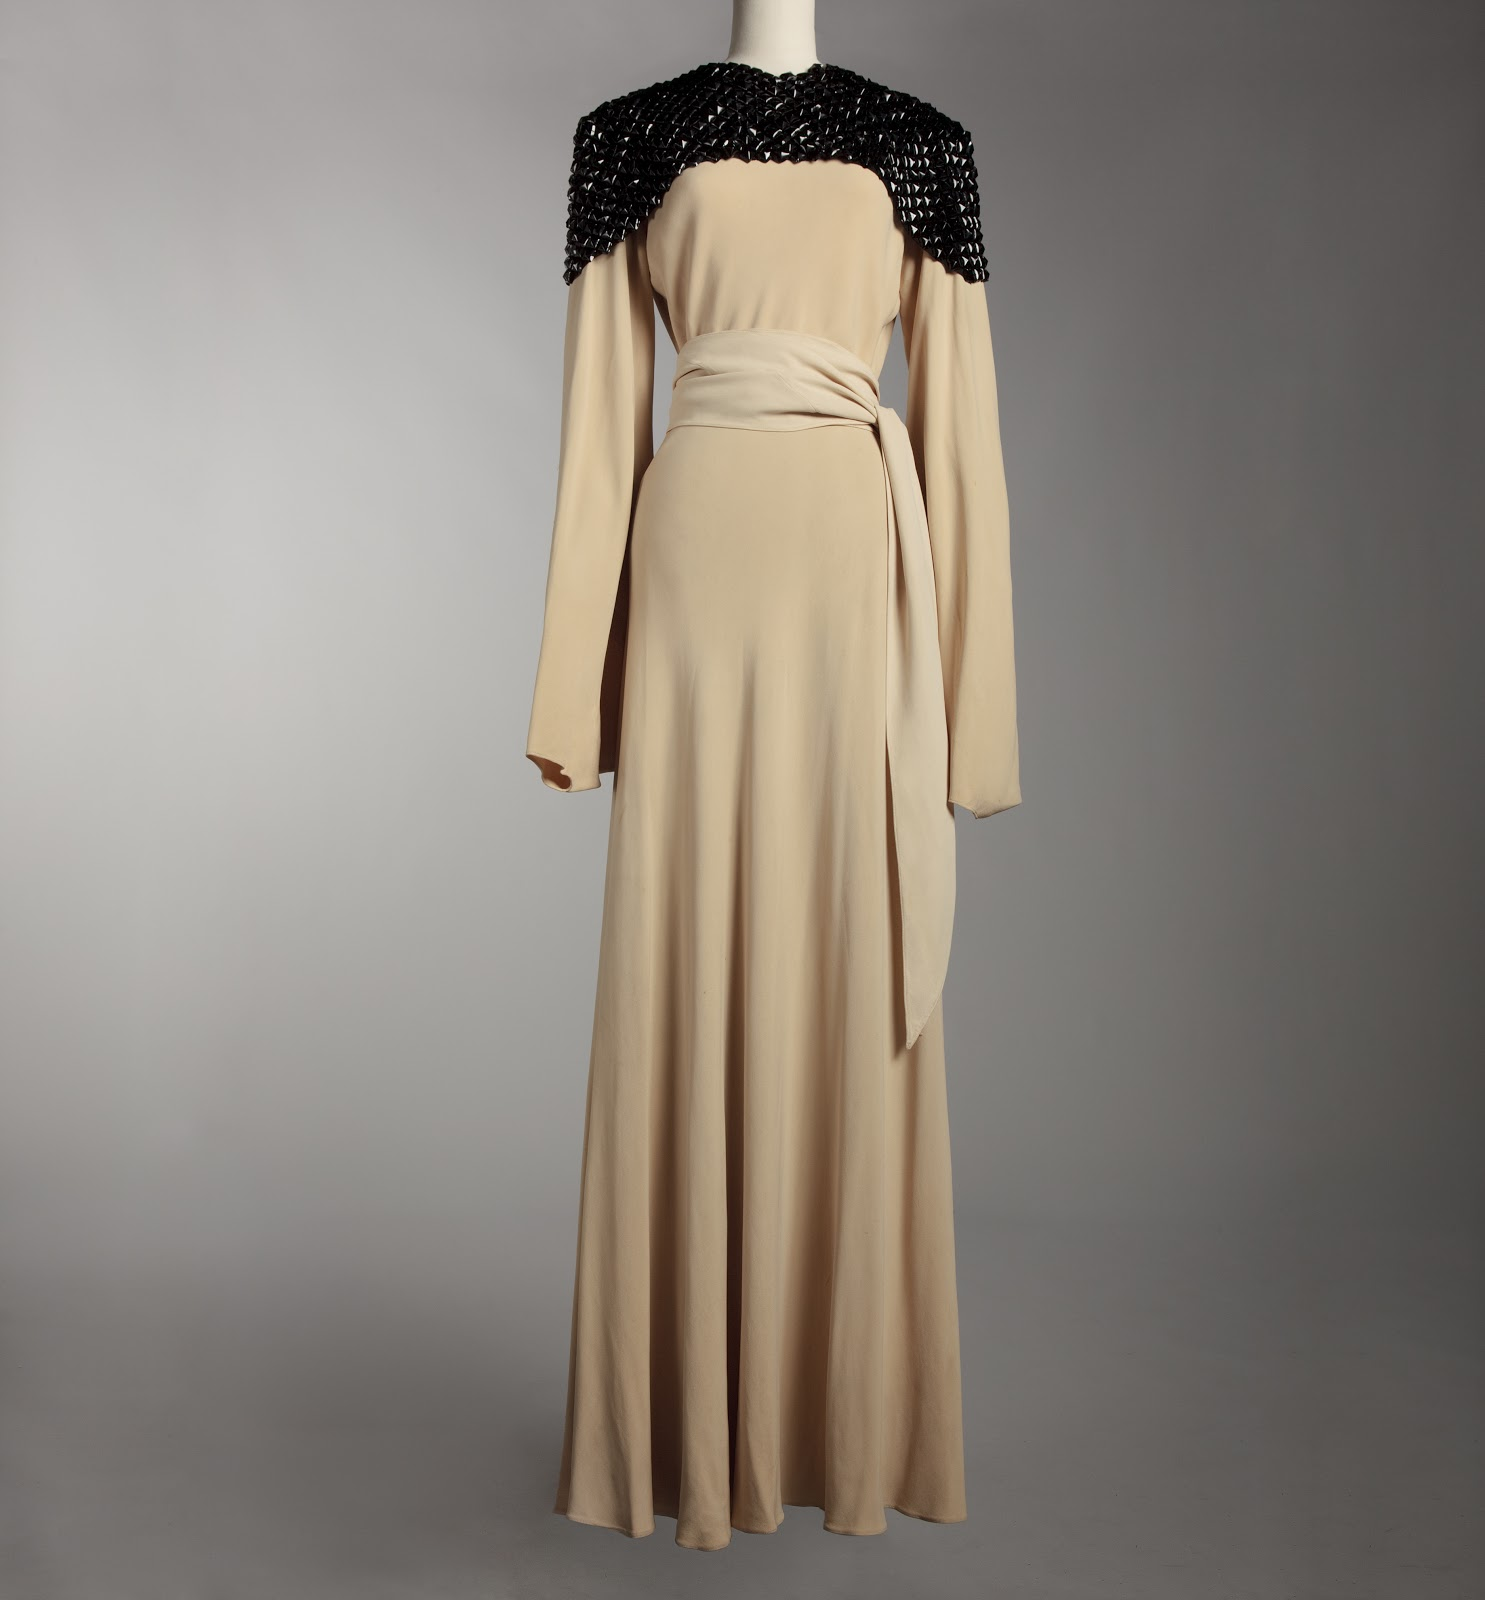 Jeanne lanvin concerto evening gown  1934 35